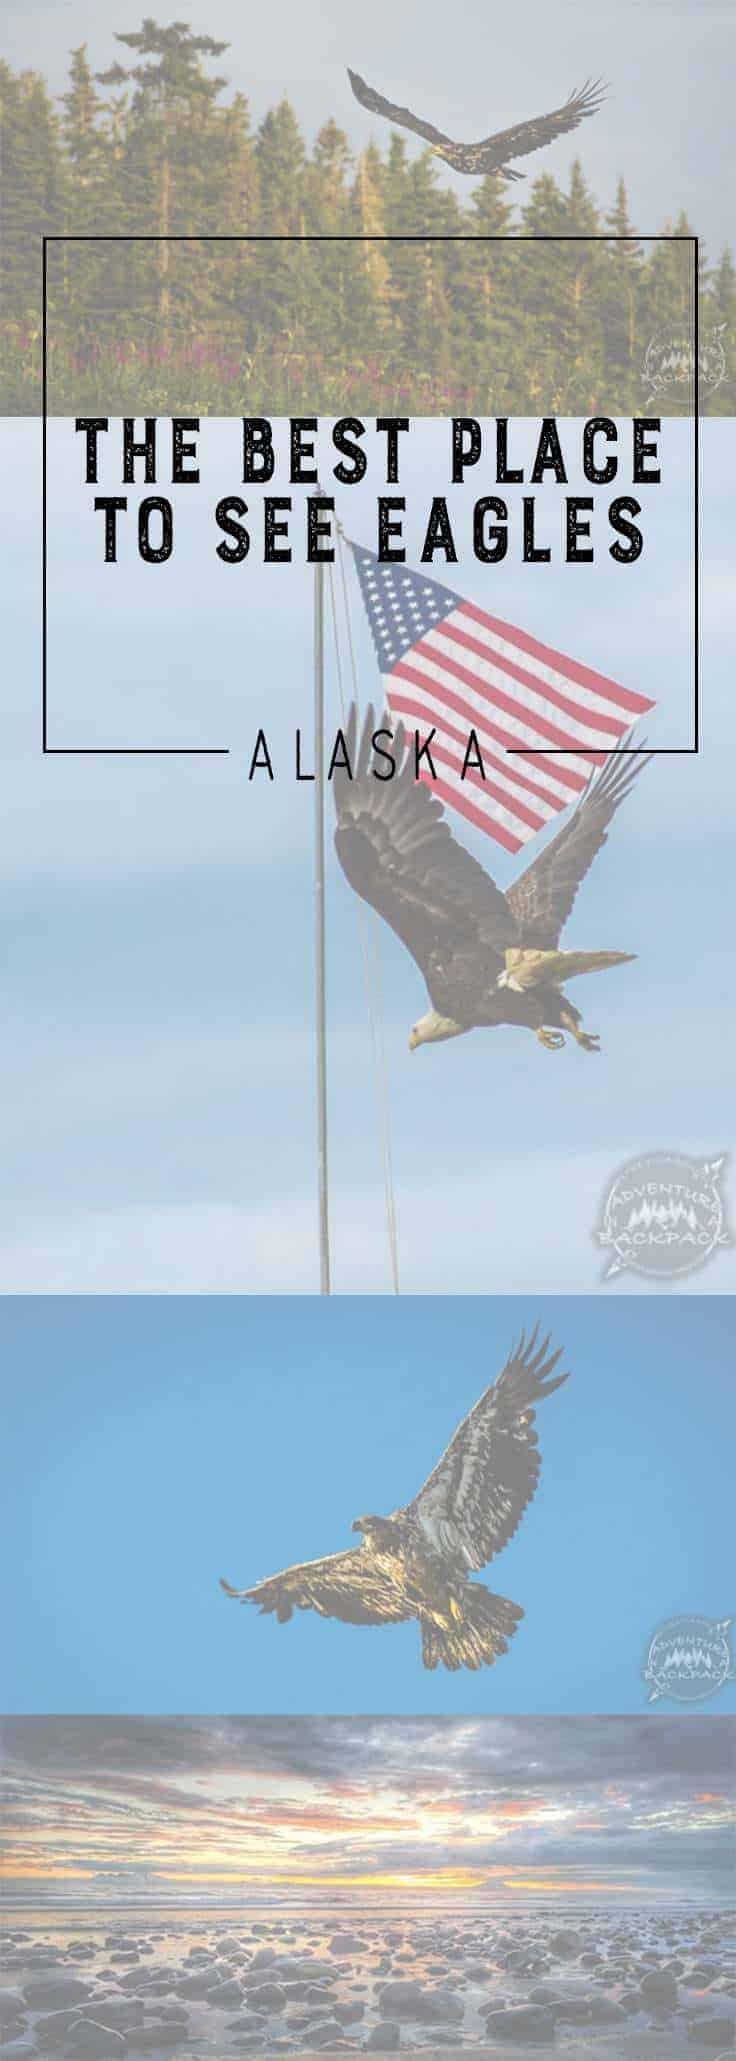 Alaska | Bald Eagles | Golden Eagles | Eagles Flying